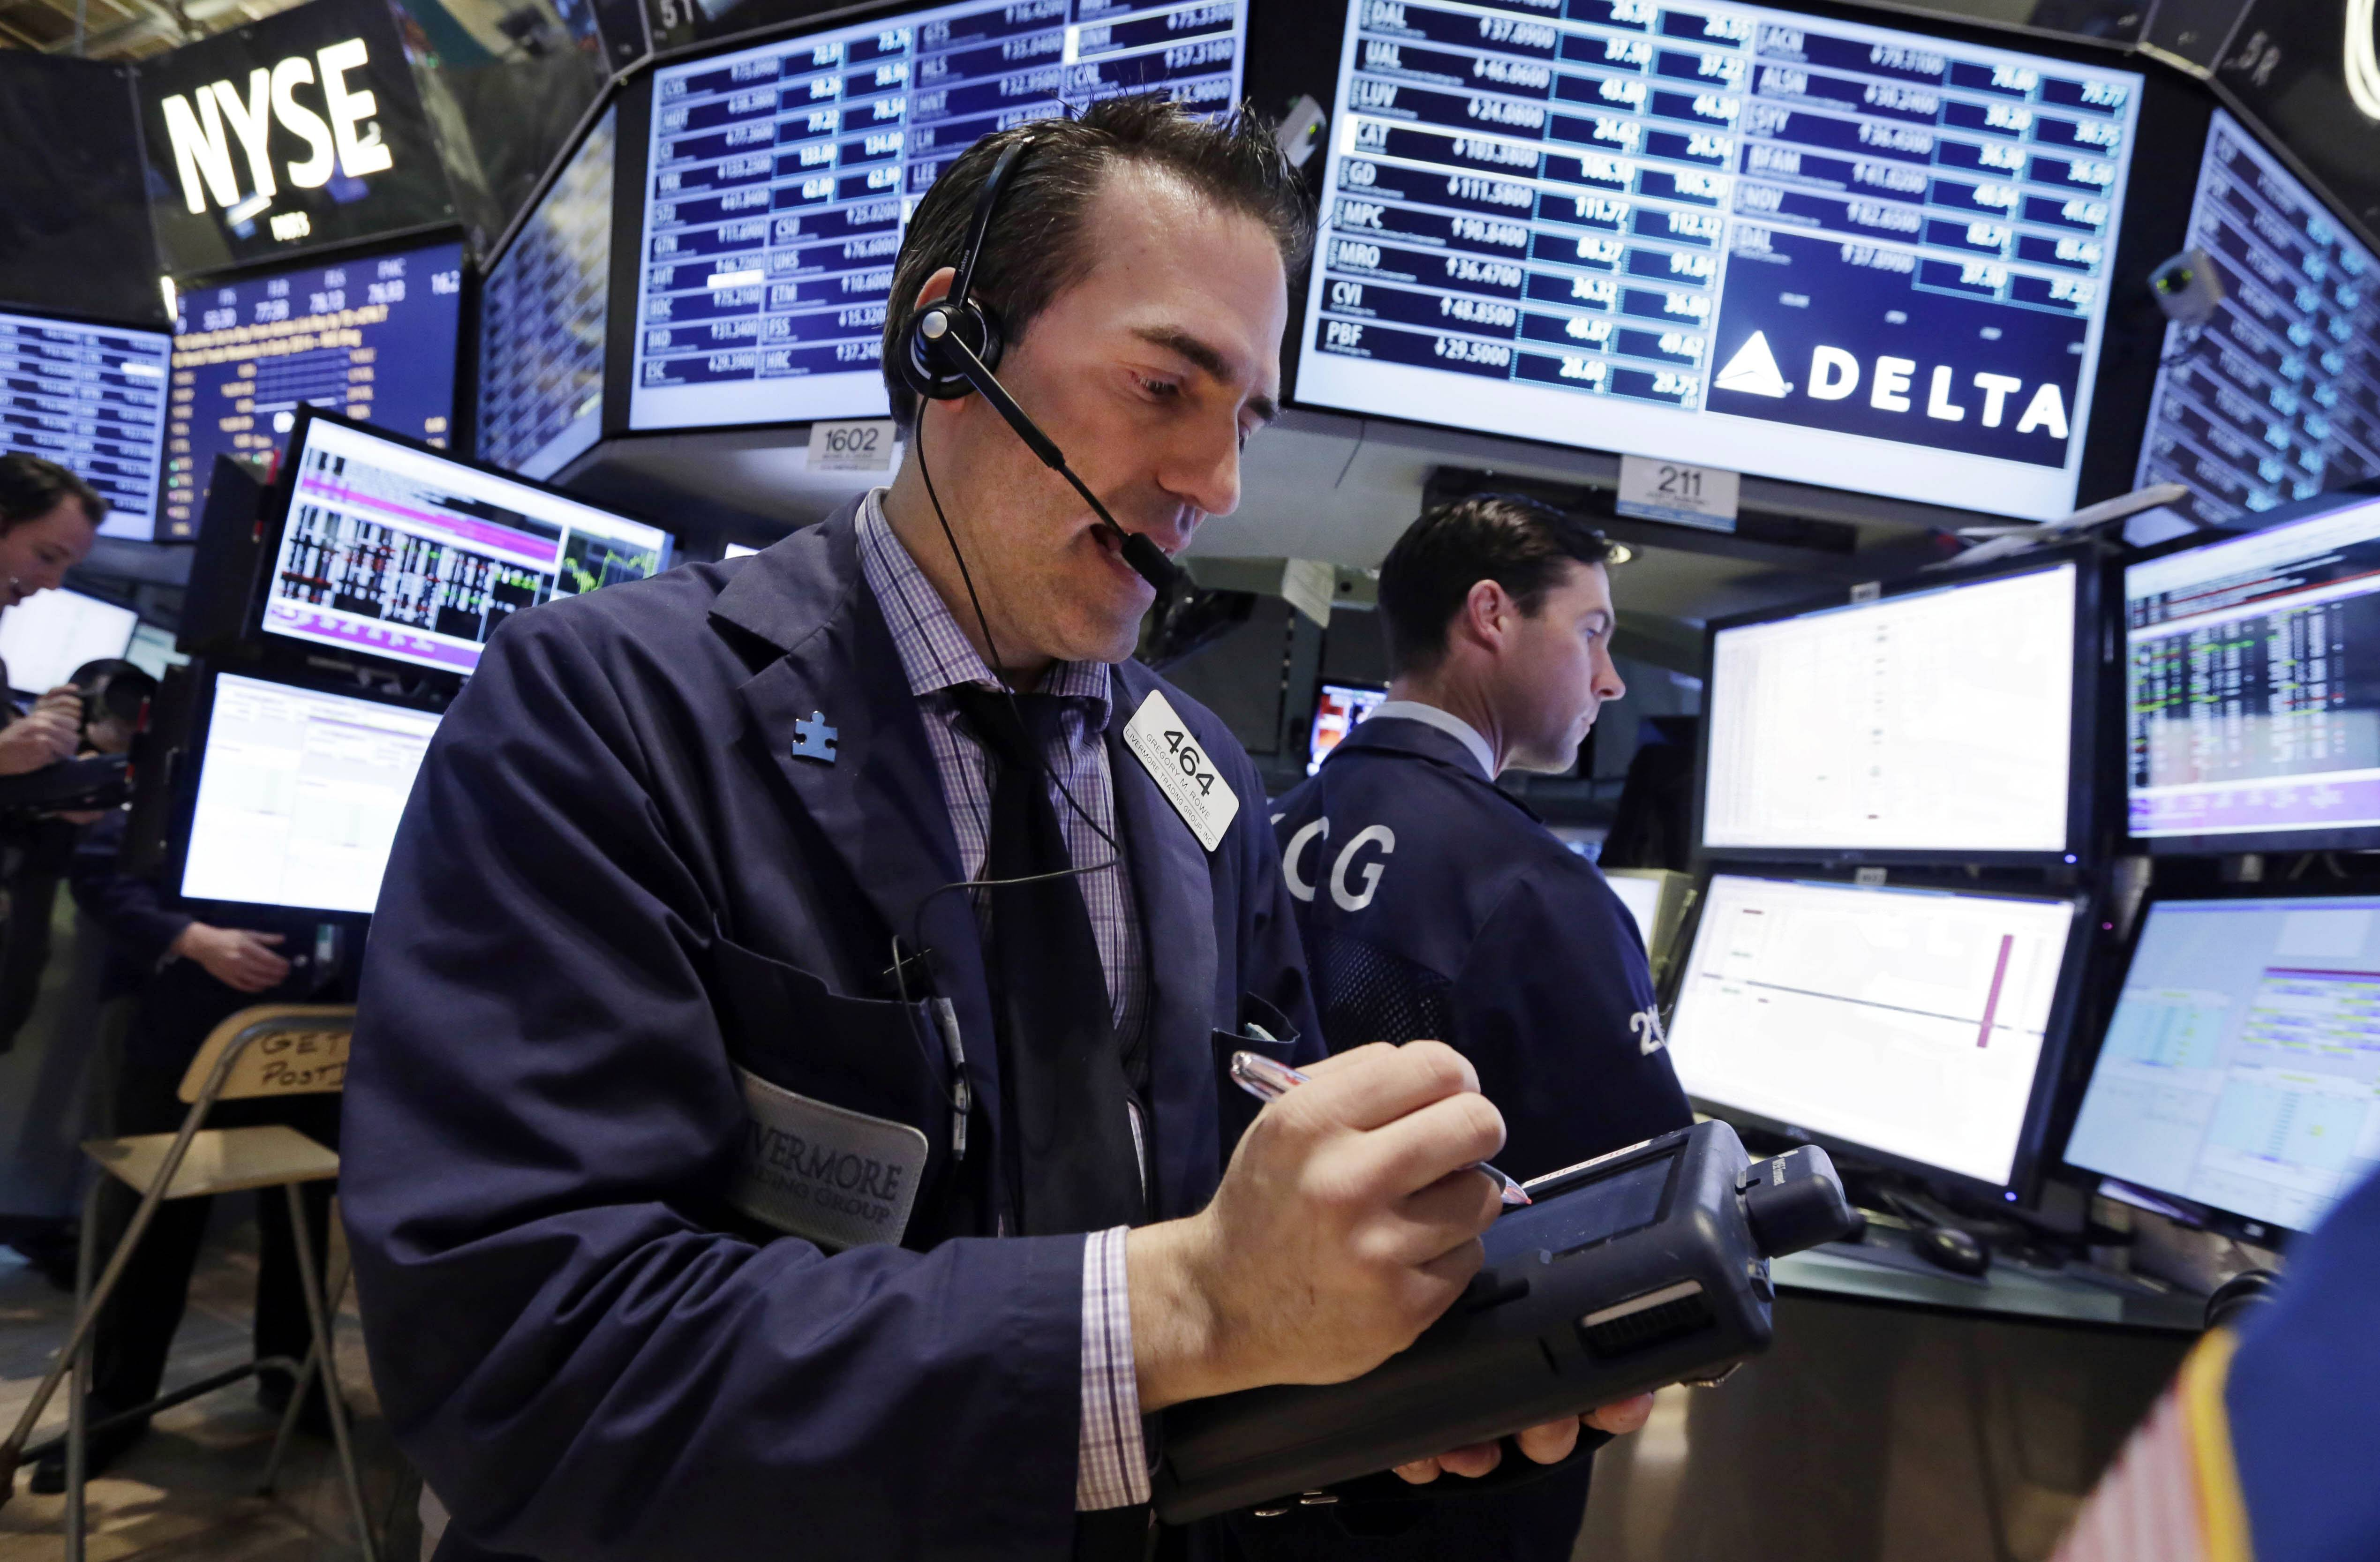 Stocks rose Thursday, with the Standard & Poor's 500 Index trading near a record, as technology companies rallied after Apple results topped estimates to offset a slump in phone shares.